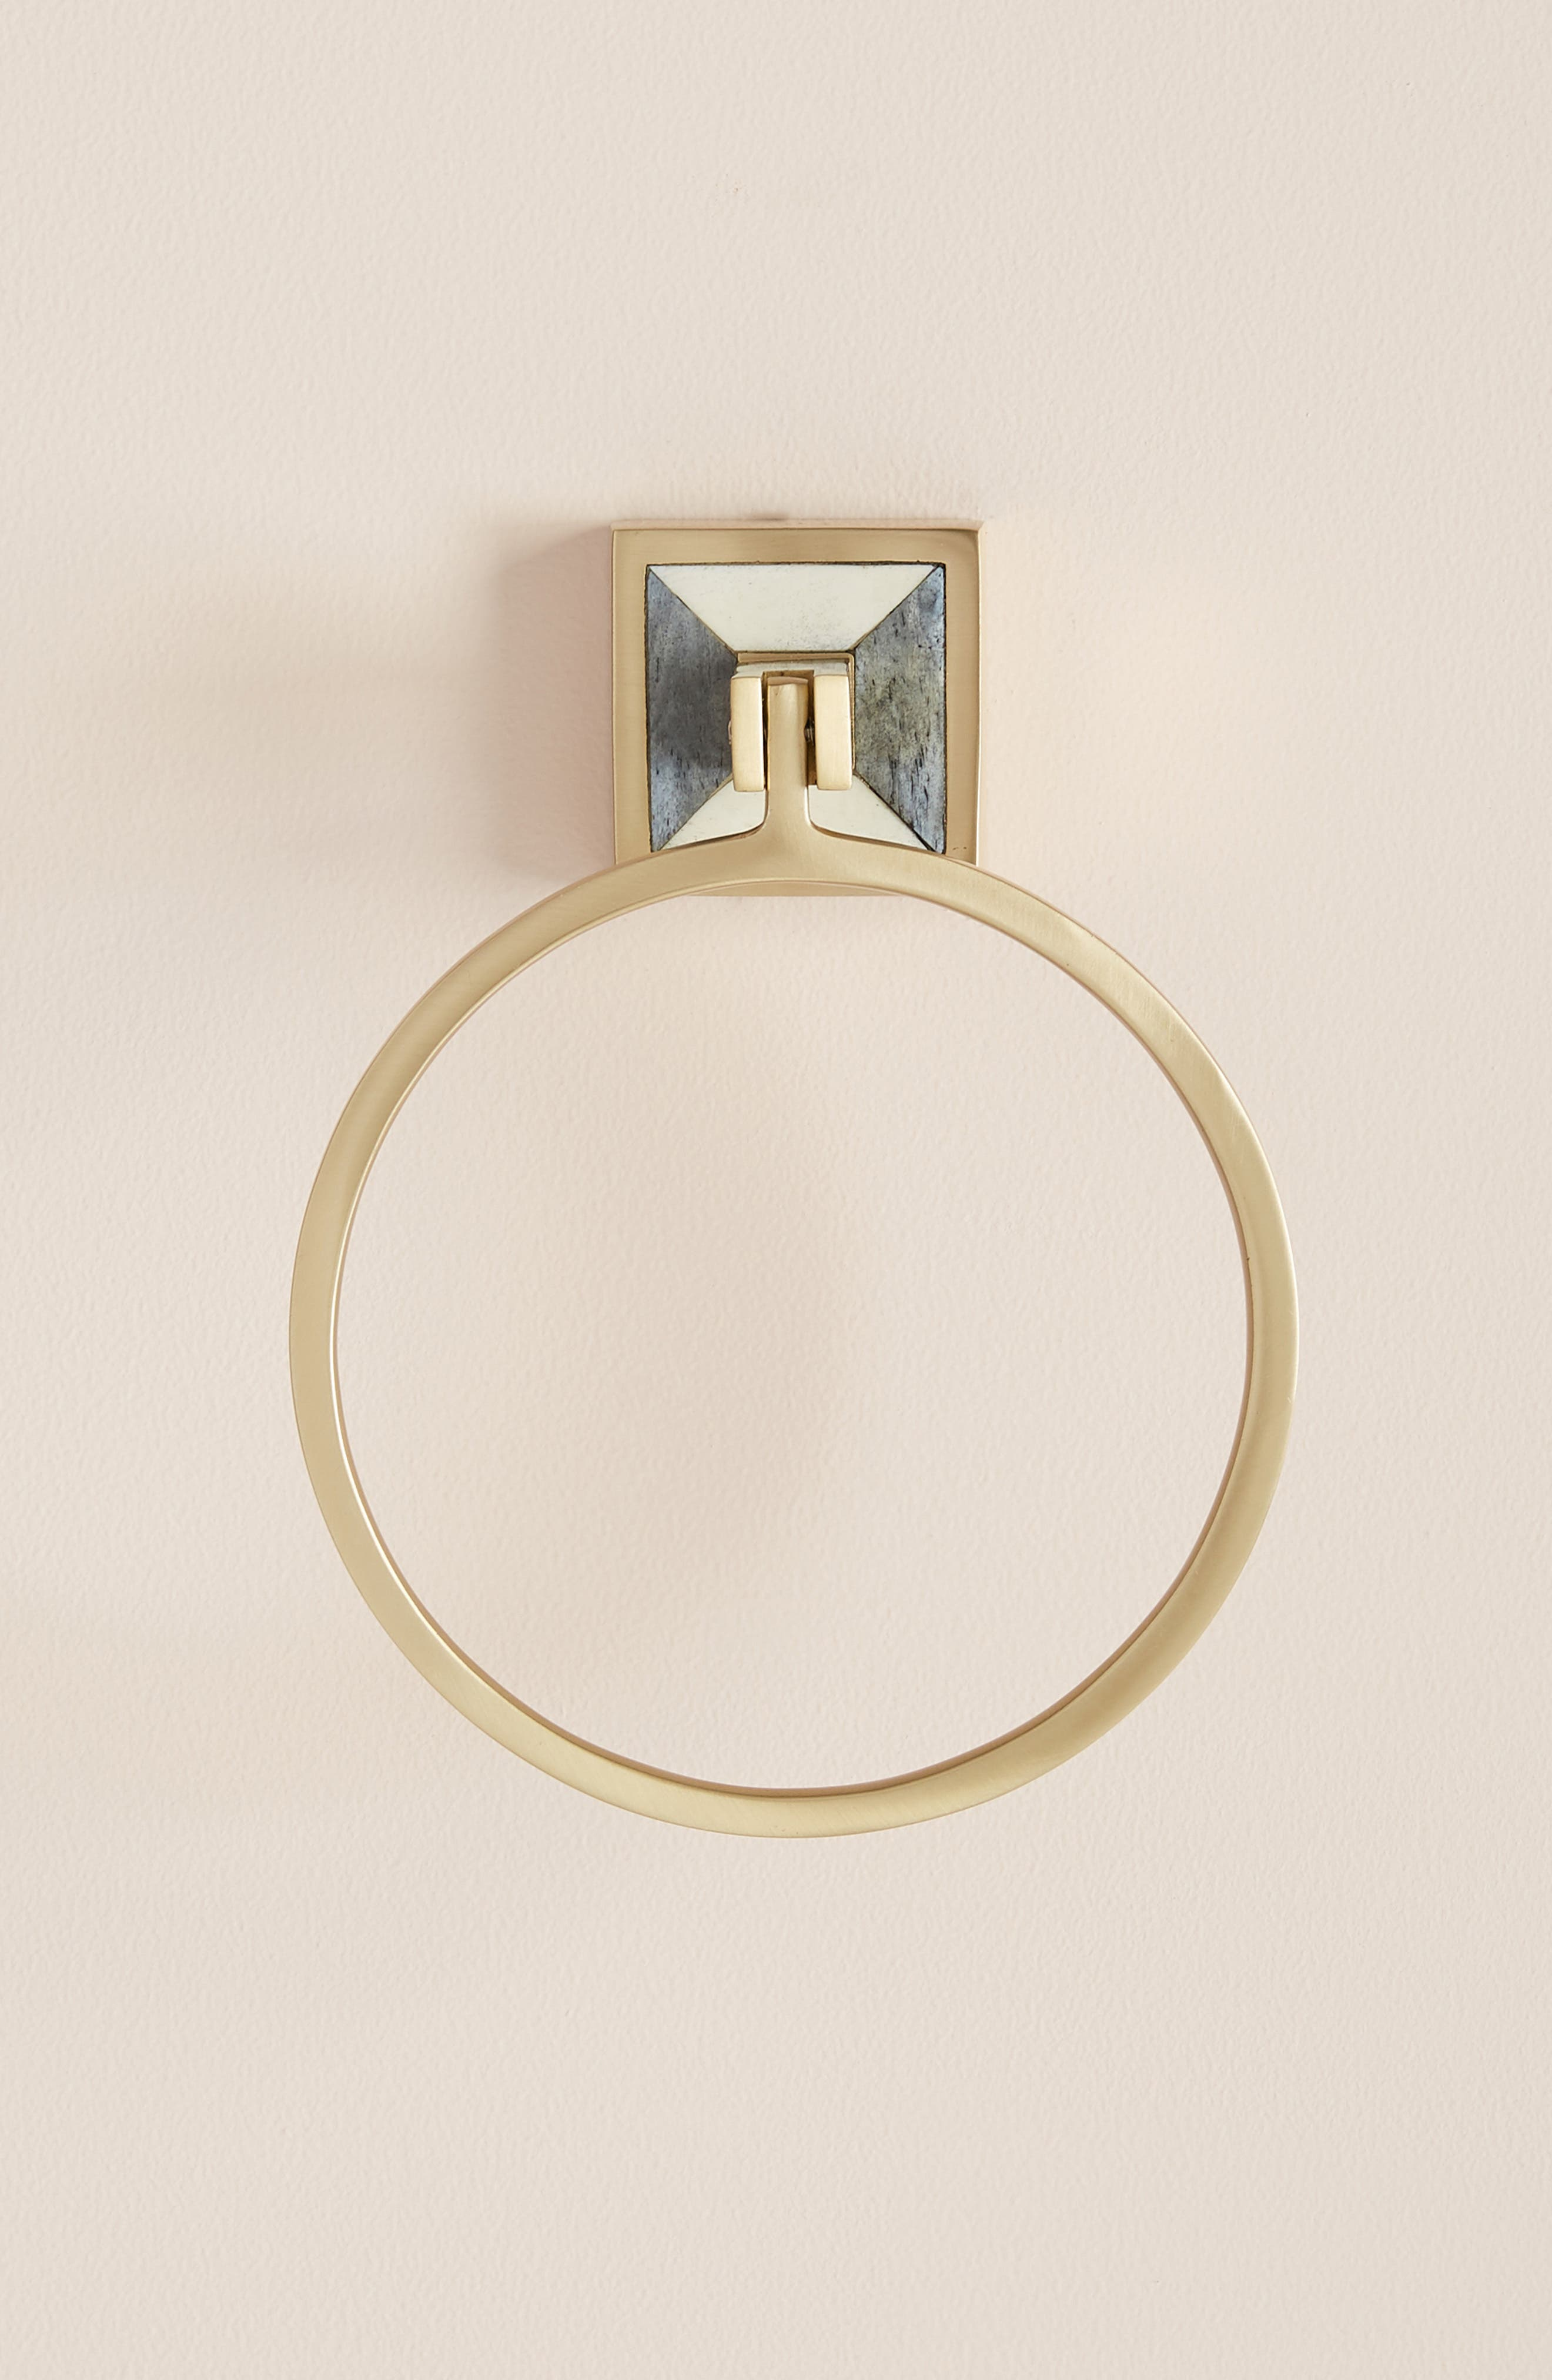 ANTHROPOLOGIE, Cayenne Towel Ring, Main thumbnail 1, color, 442